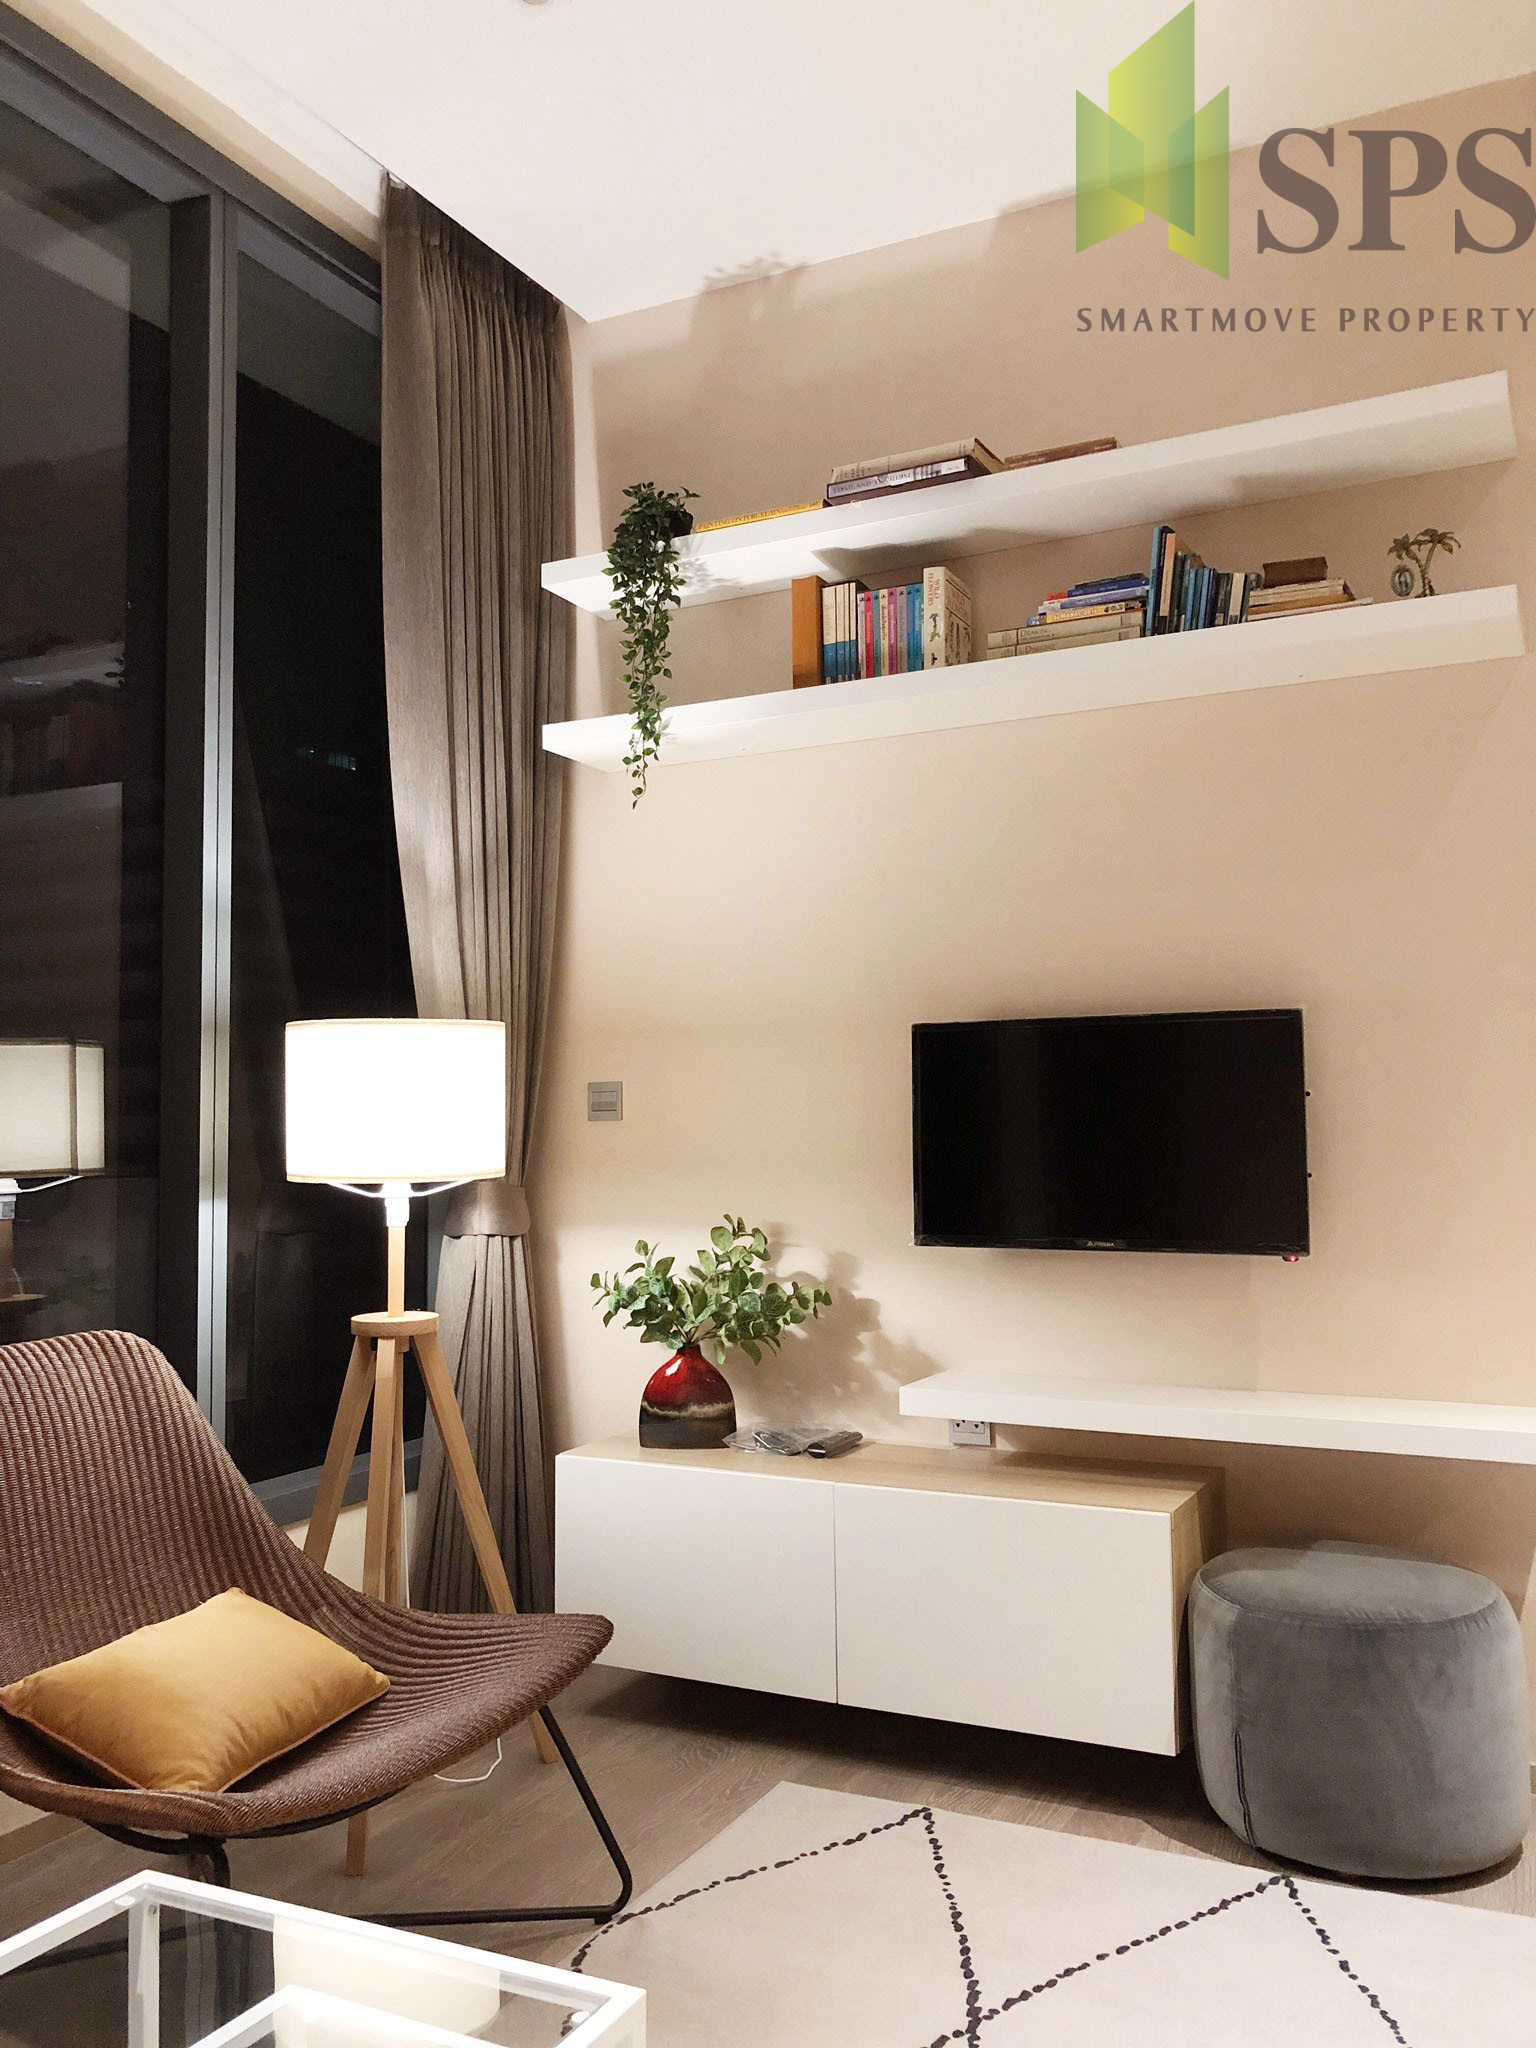 FOR RENT!!!! The Esse at Asoke Contemporary Modern style Ready to move in!!!! (SPS-LN-ESSE-AK17)